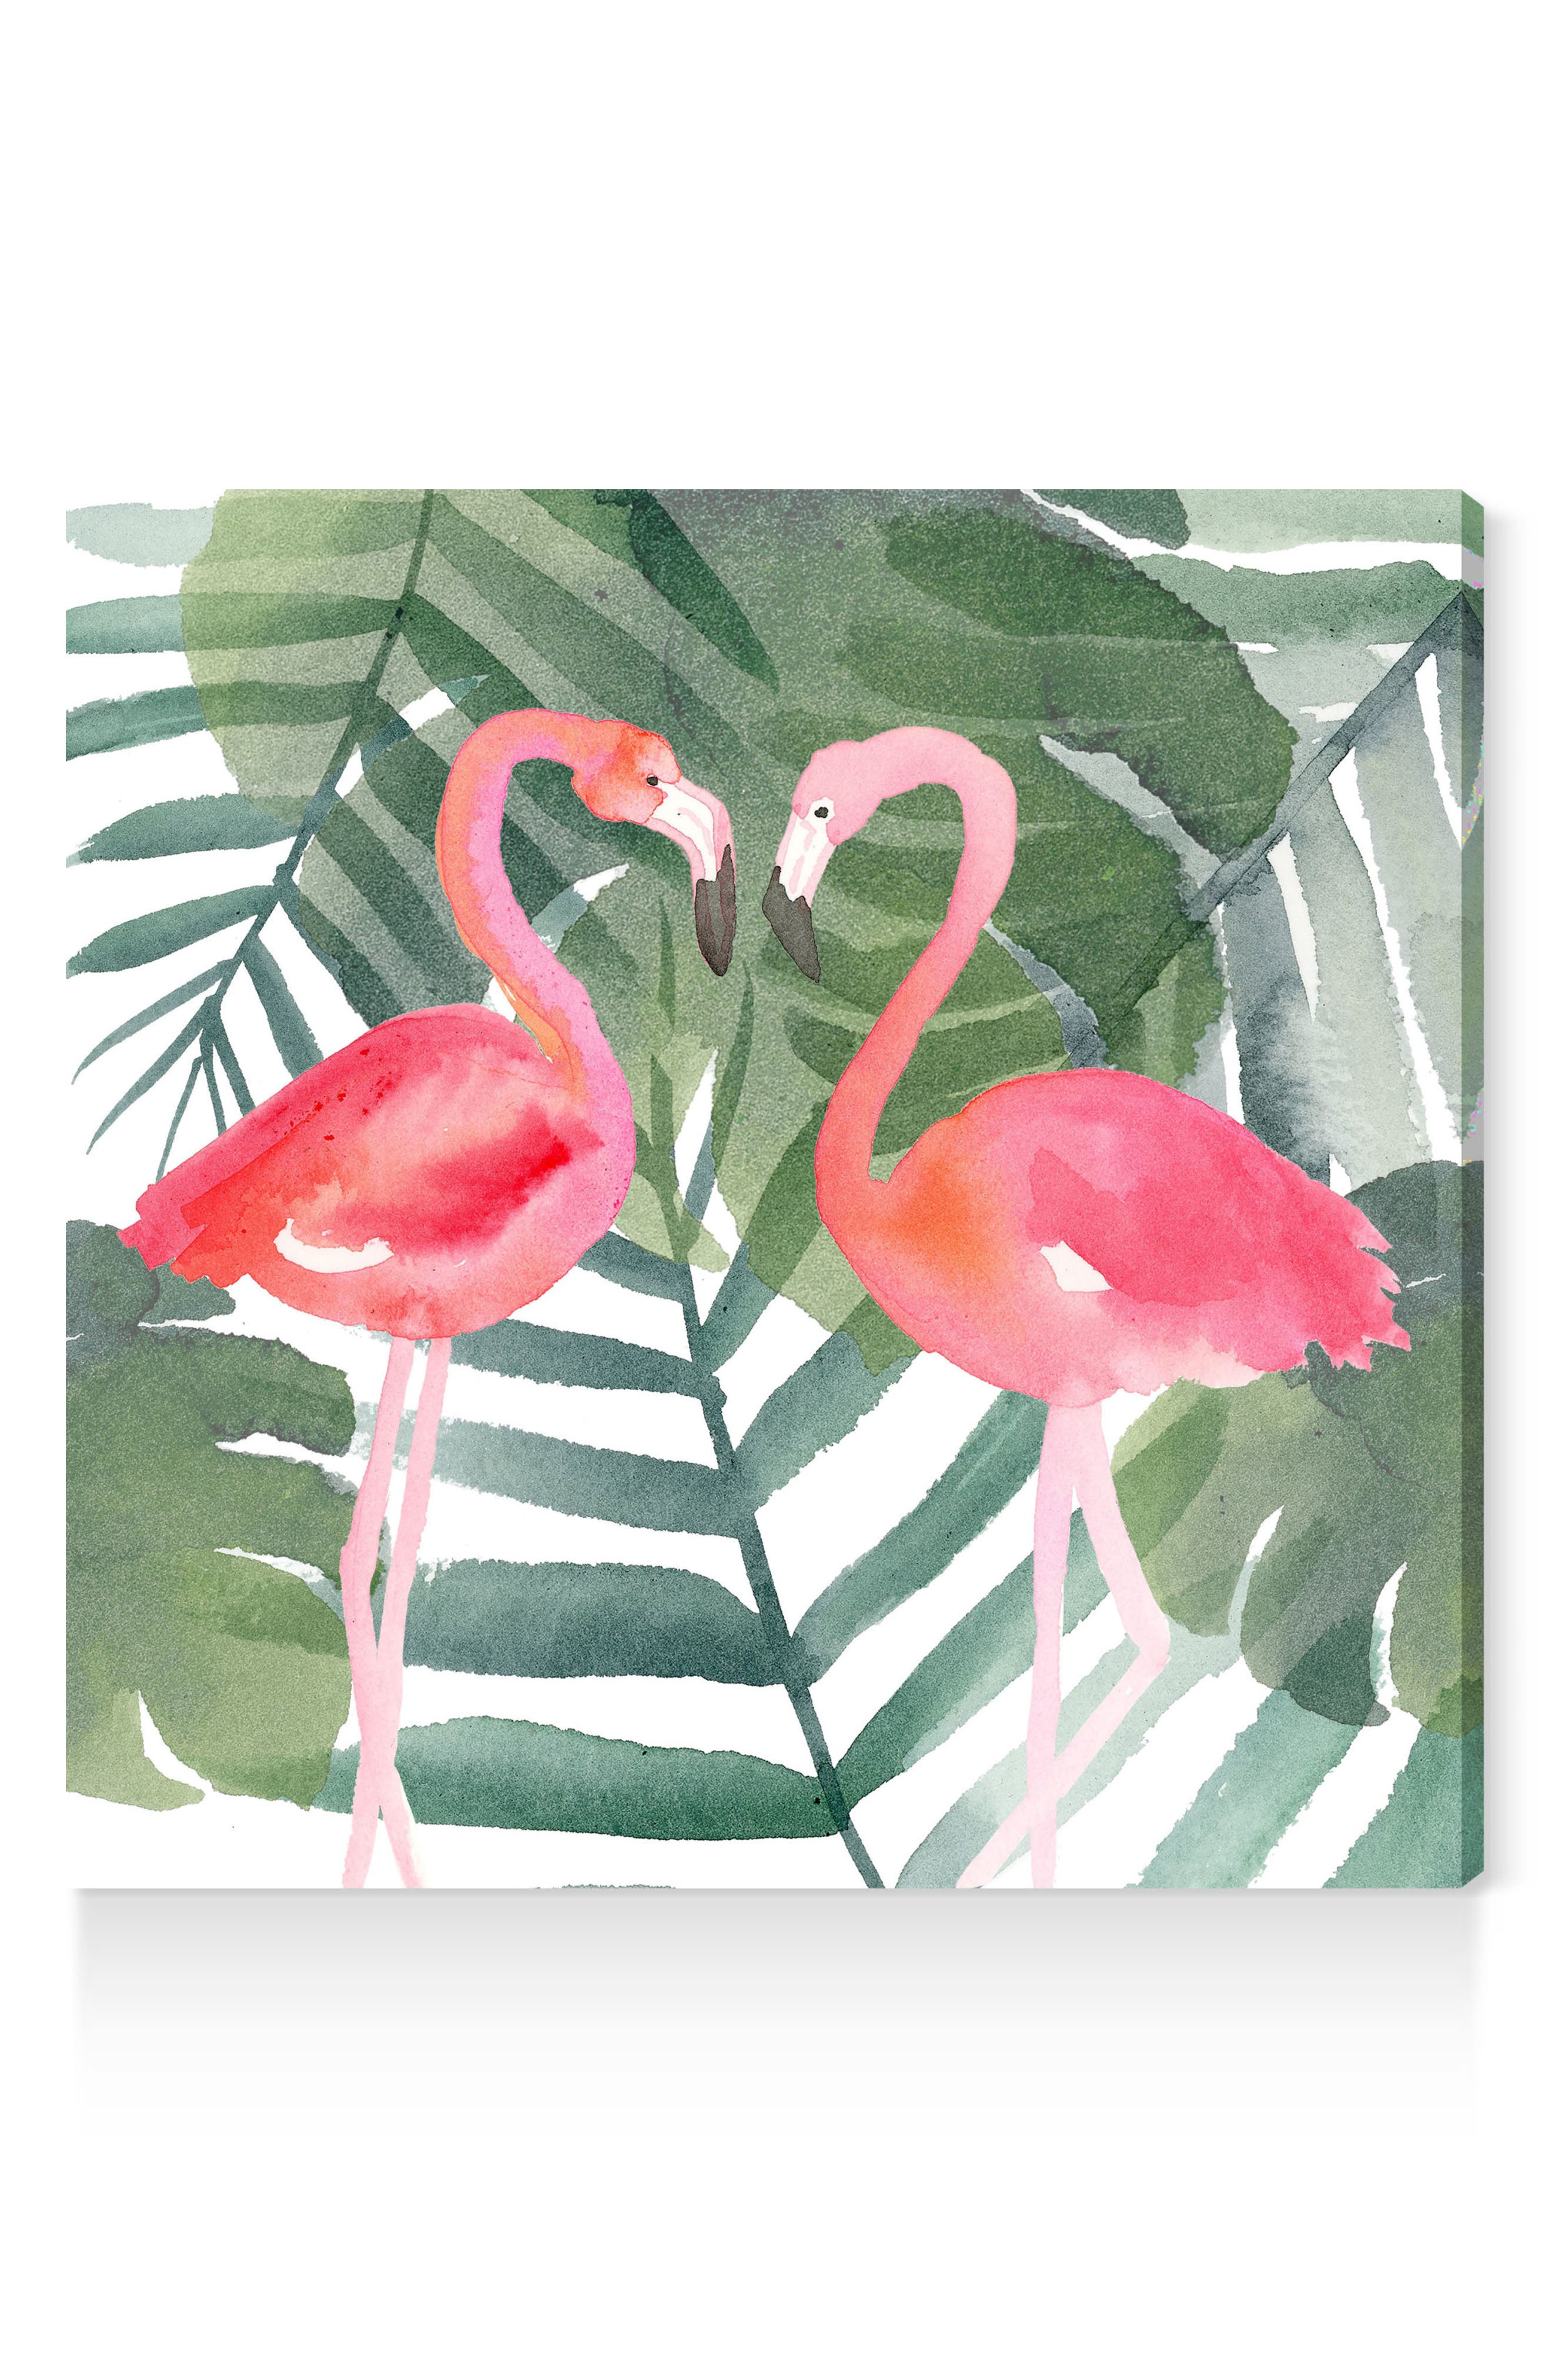 Alternate Image 1 Selected - Oliver Gal Pinkest Love Canvas Wall Art